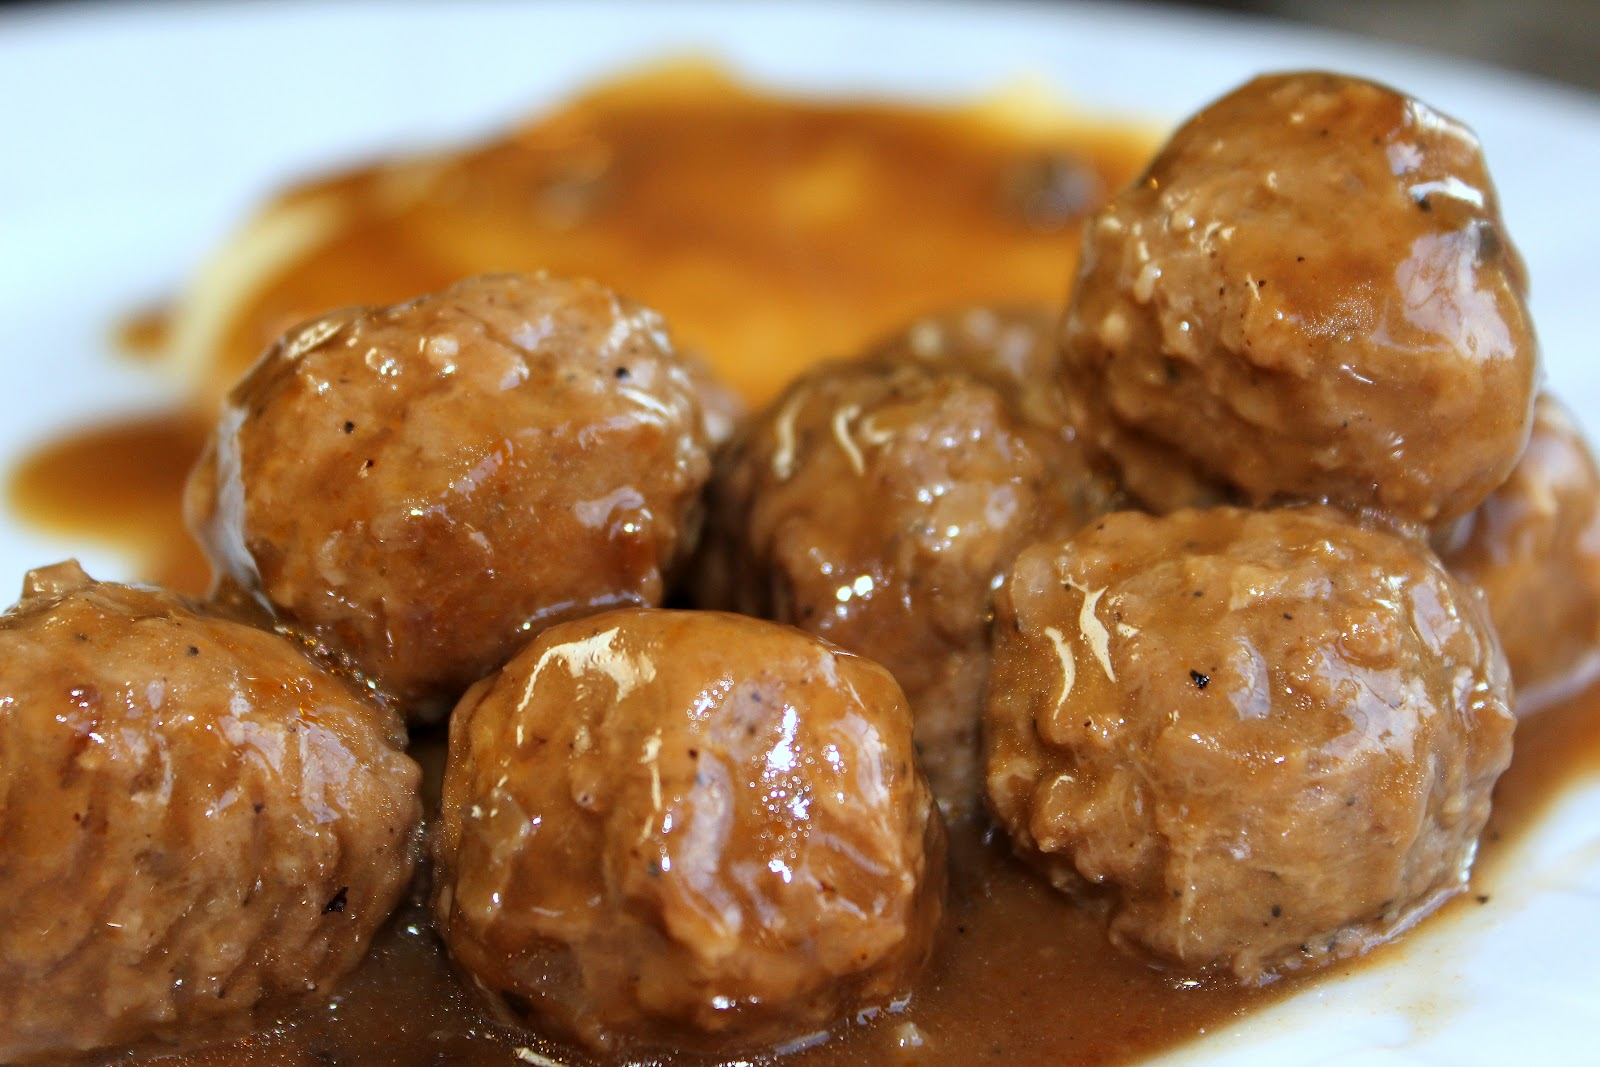 Crock-Pot Hawaiian Meatballs. Watch out dear readers, this recipe for Crock-Pot Hawaiian Meatballs is going to knock your socks off. These meatballs are mighty addictive.